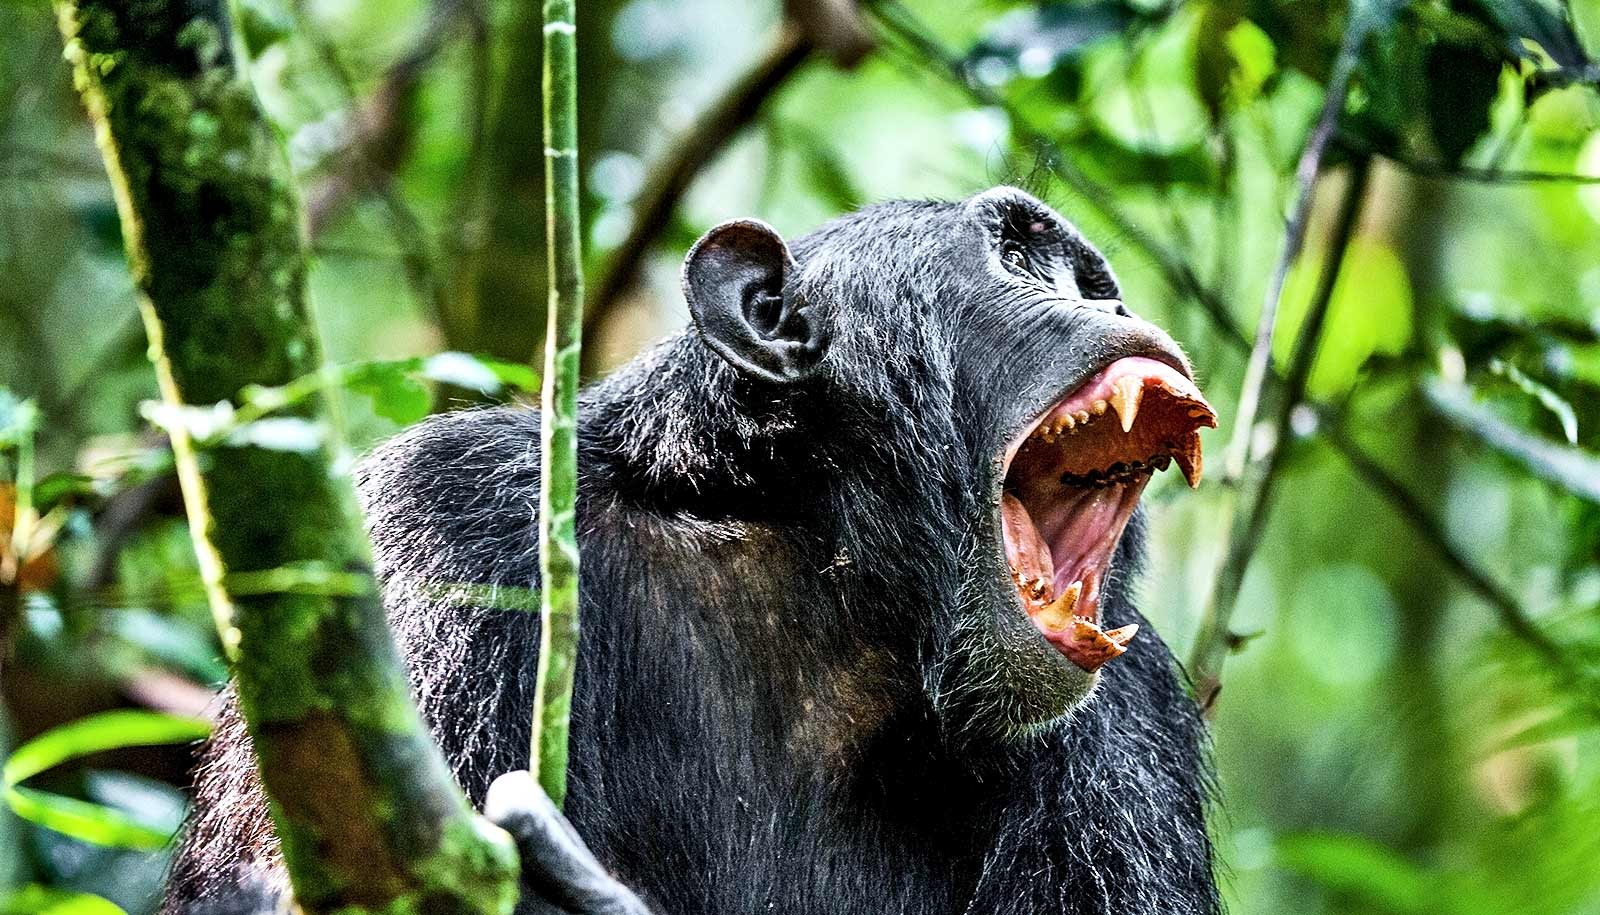 How infighting chimps led to a 4-year 'civil war' - Futurity